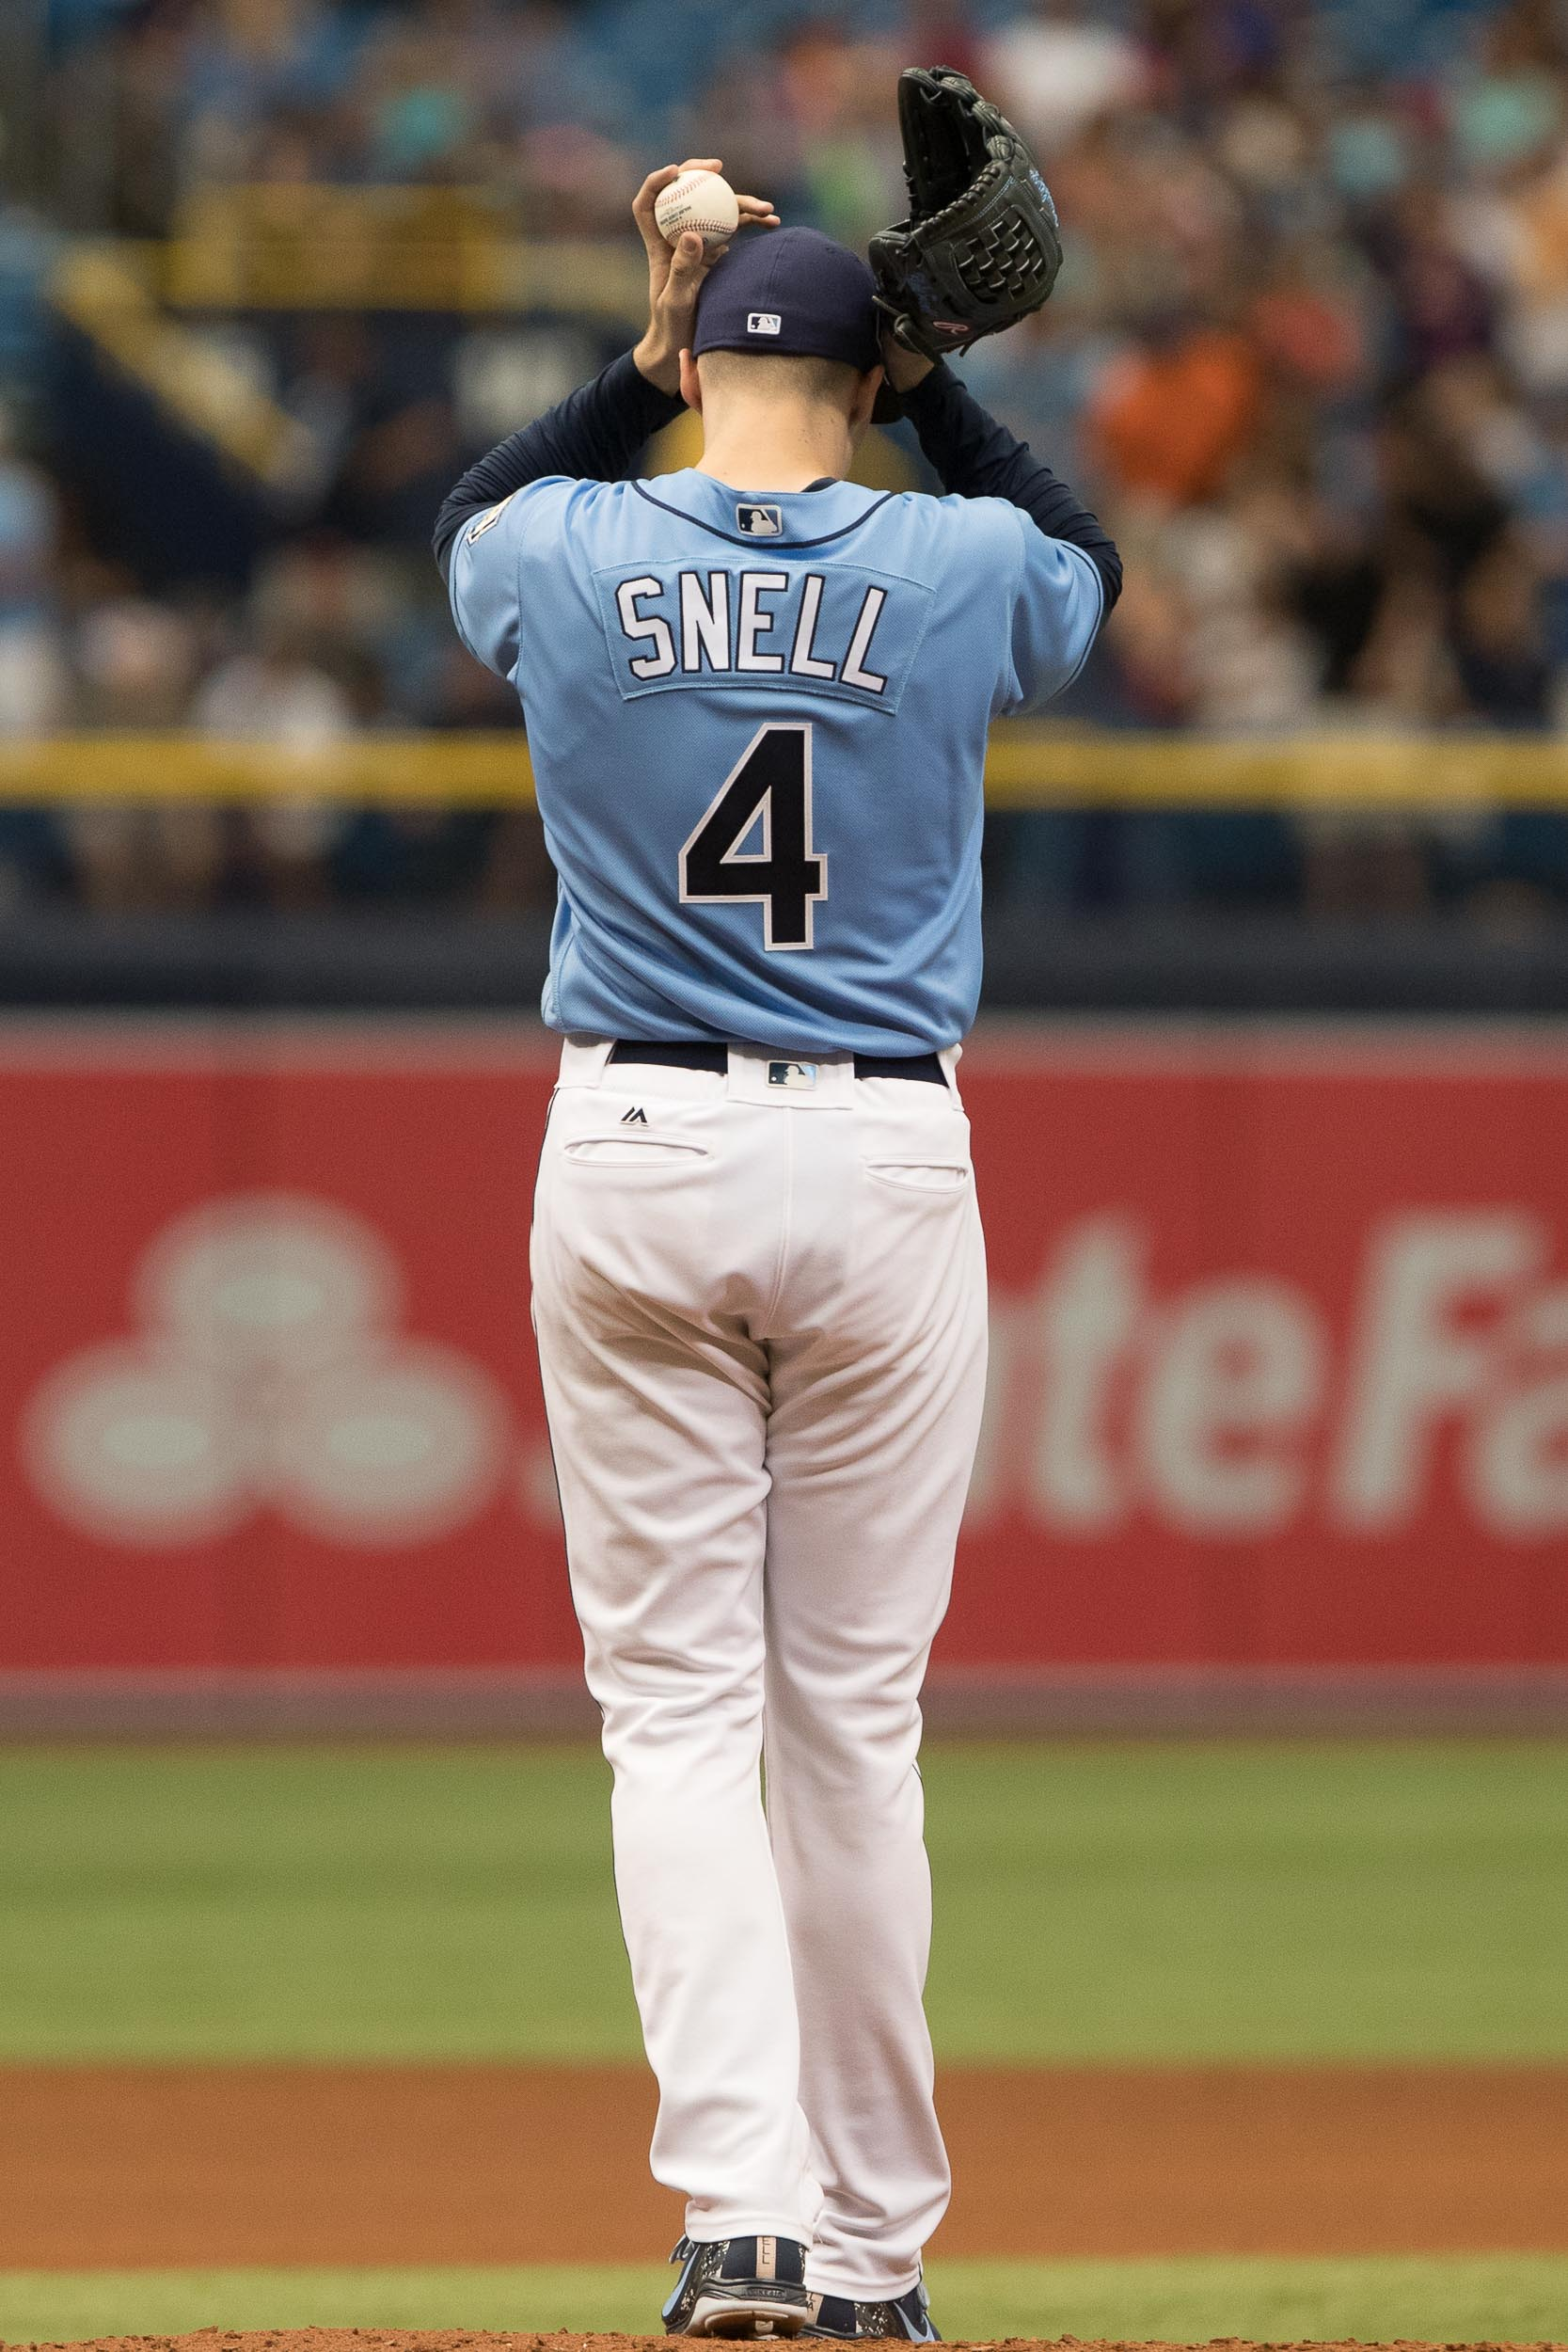 Blake Snell is among the AL leaders in pitching./STEVEN MUNCIE